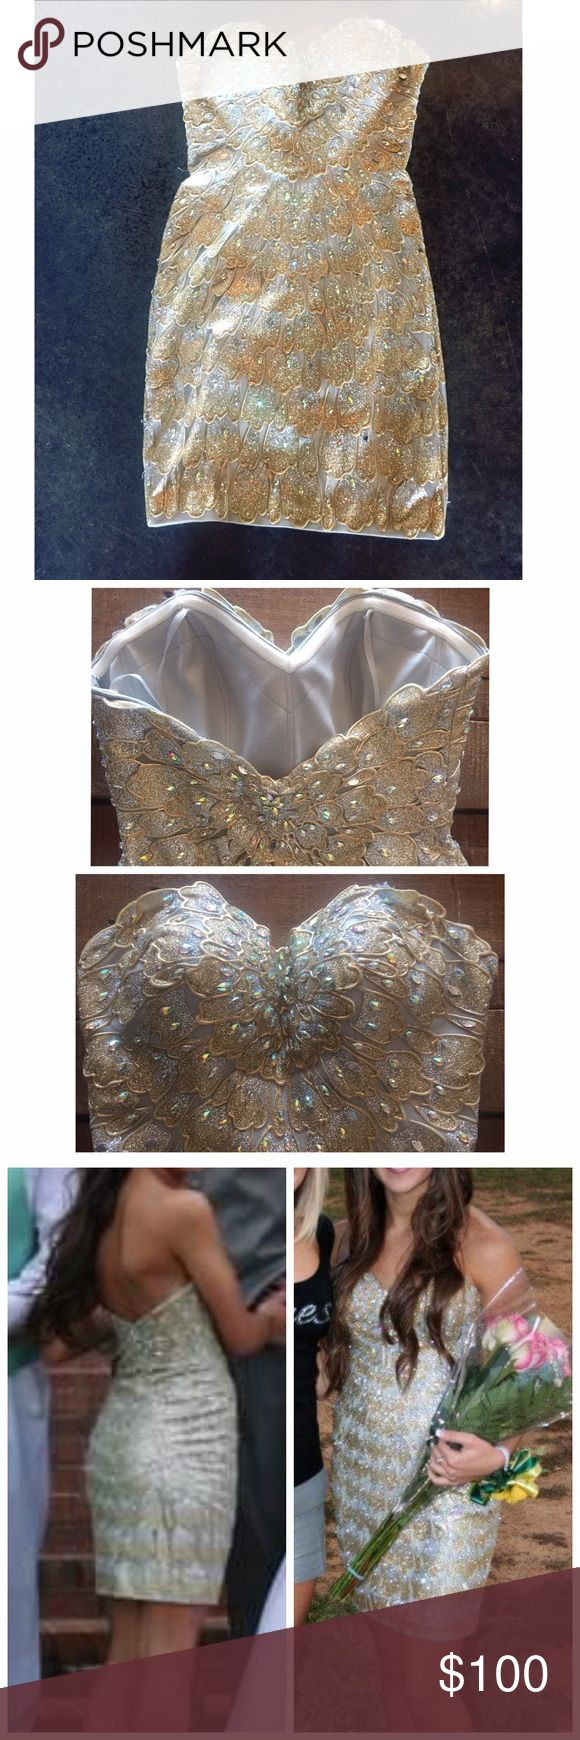 La femme gold prom dress Worn once la femme prom dress. Super sparkly the pictures don't even capture it. La Femme Dresses